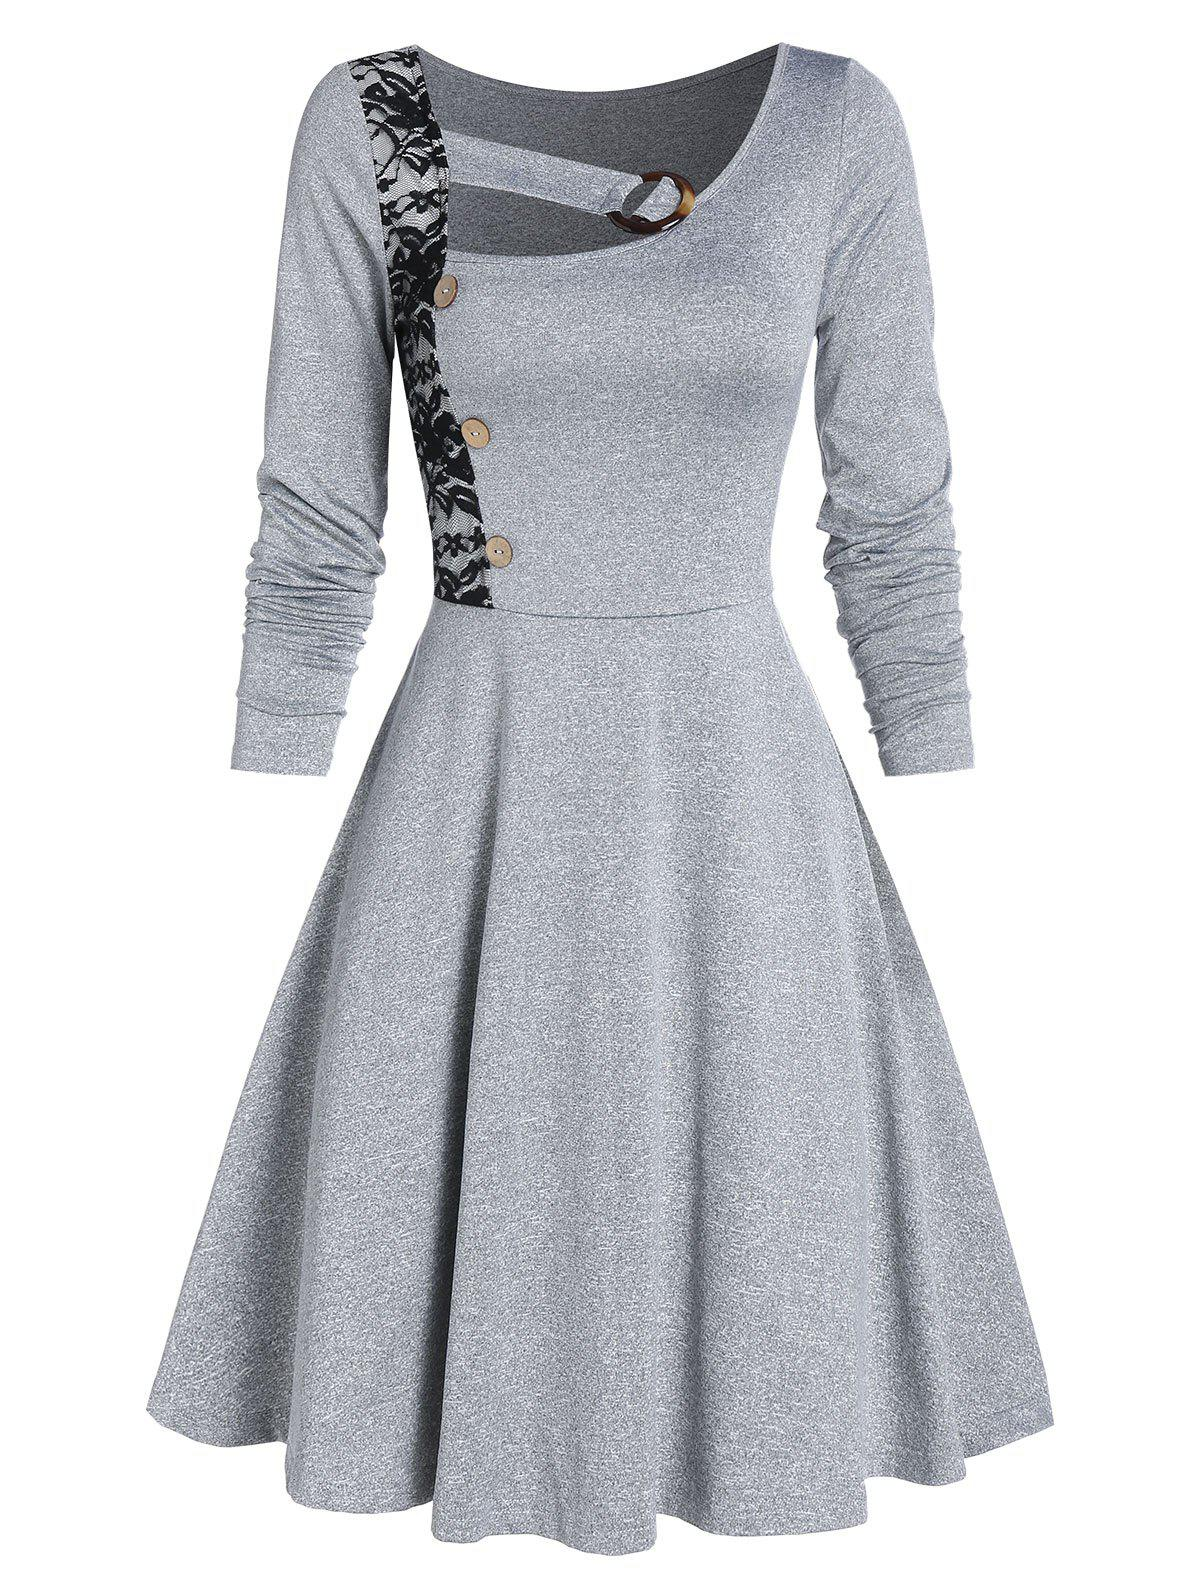 Mock Button Lace Insert Marled Flare Dress - LIGHT GRAY M